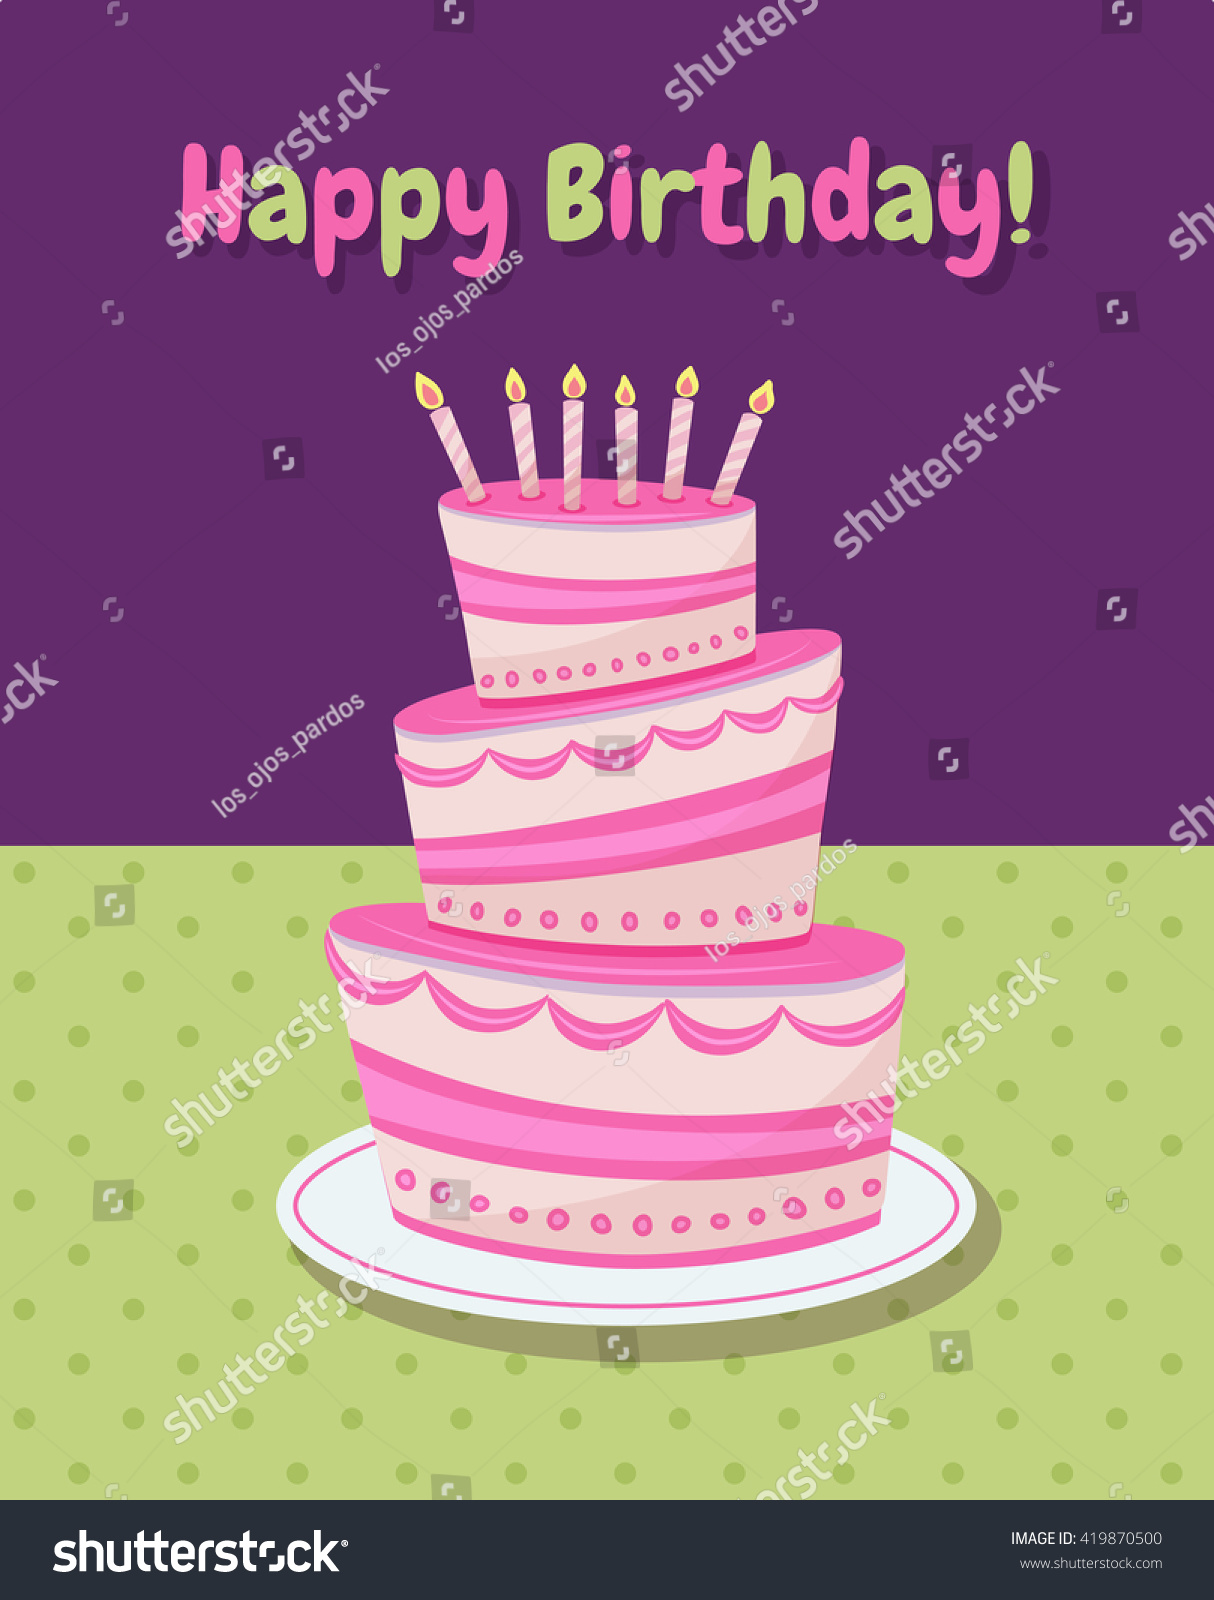 Vector Template Of A Greeting Card With Illustration Of A Cake And